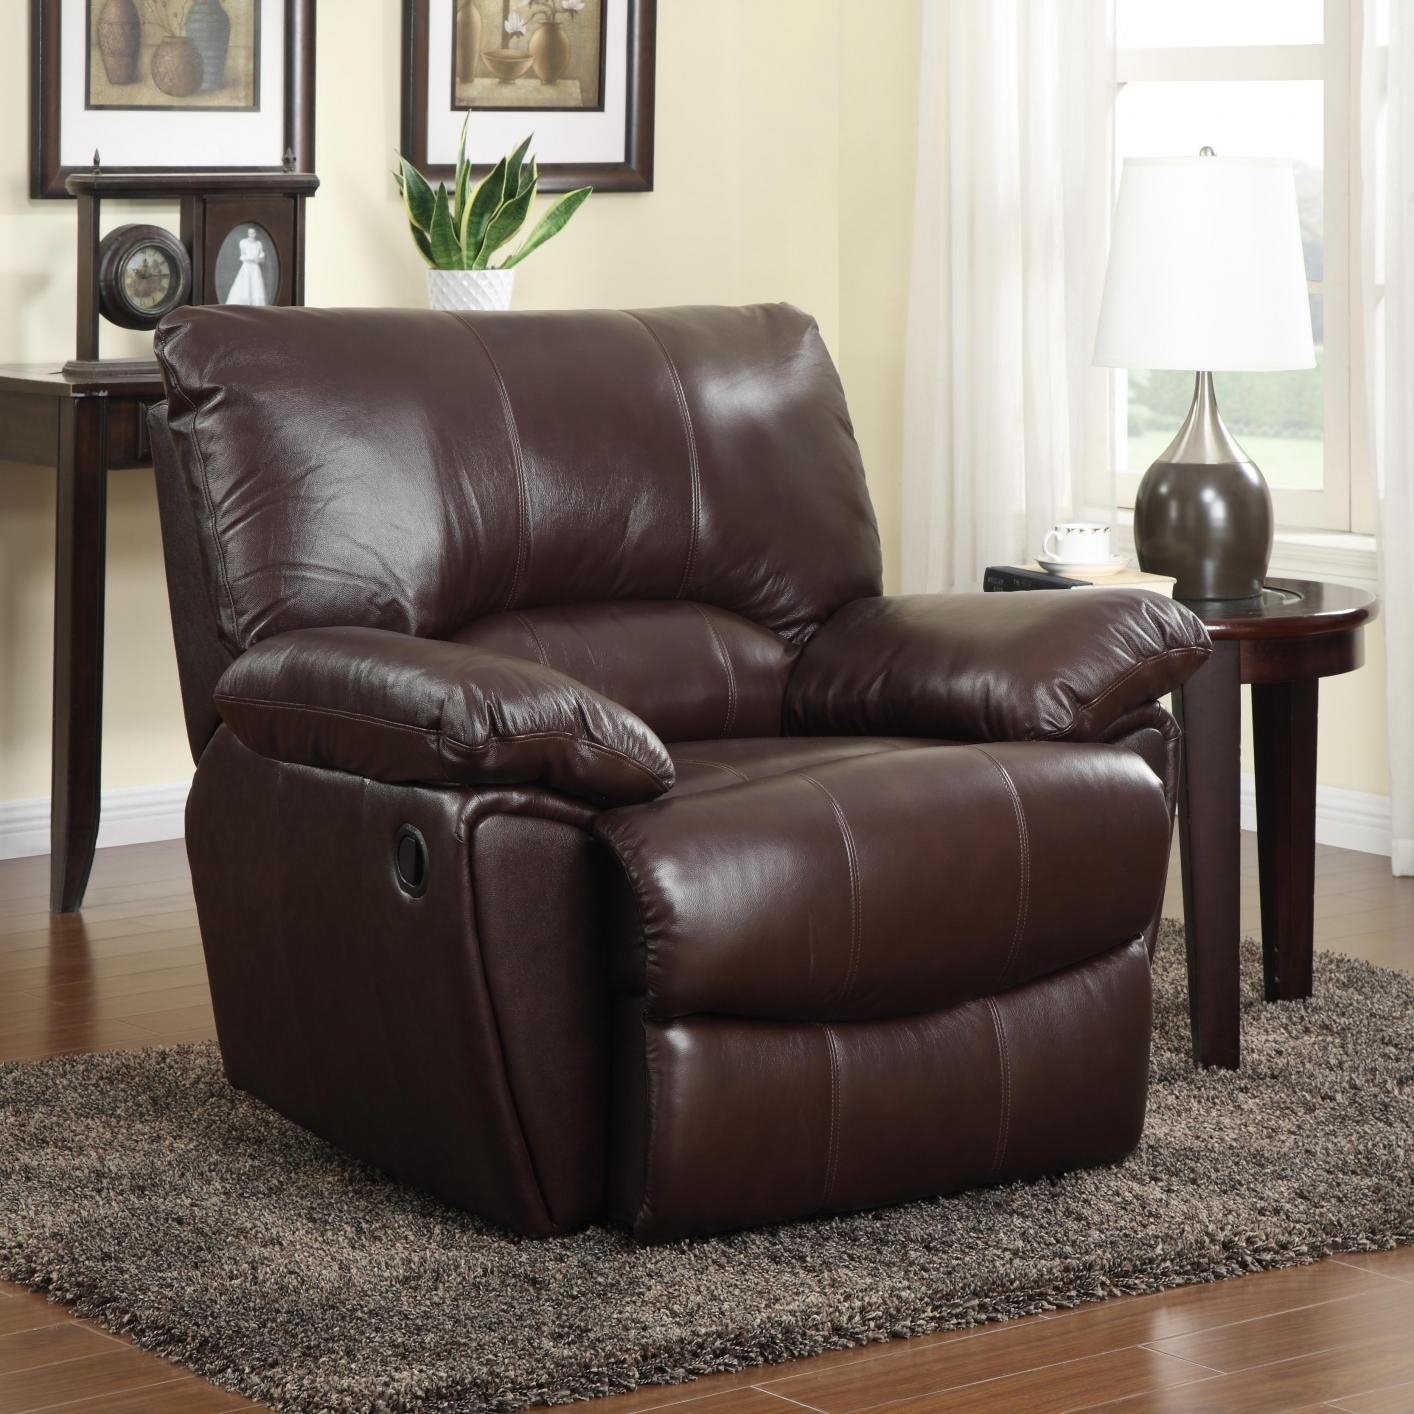 Brown Leather Power Reclining Chair – Steal A Sofa Furniture Inside Sofa Chair Recliner (Image 3 of 20)